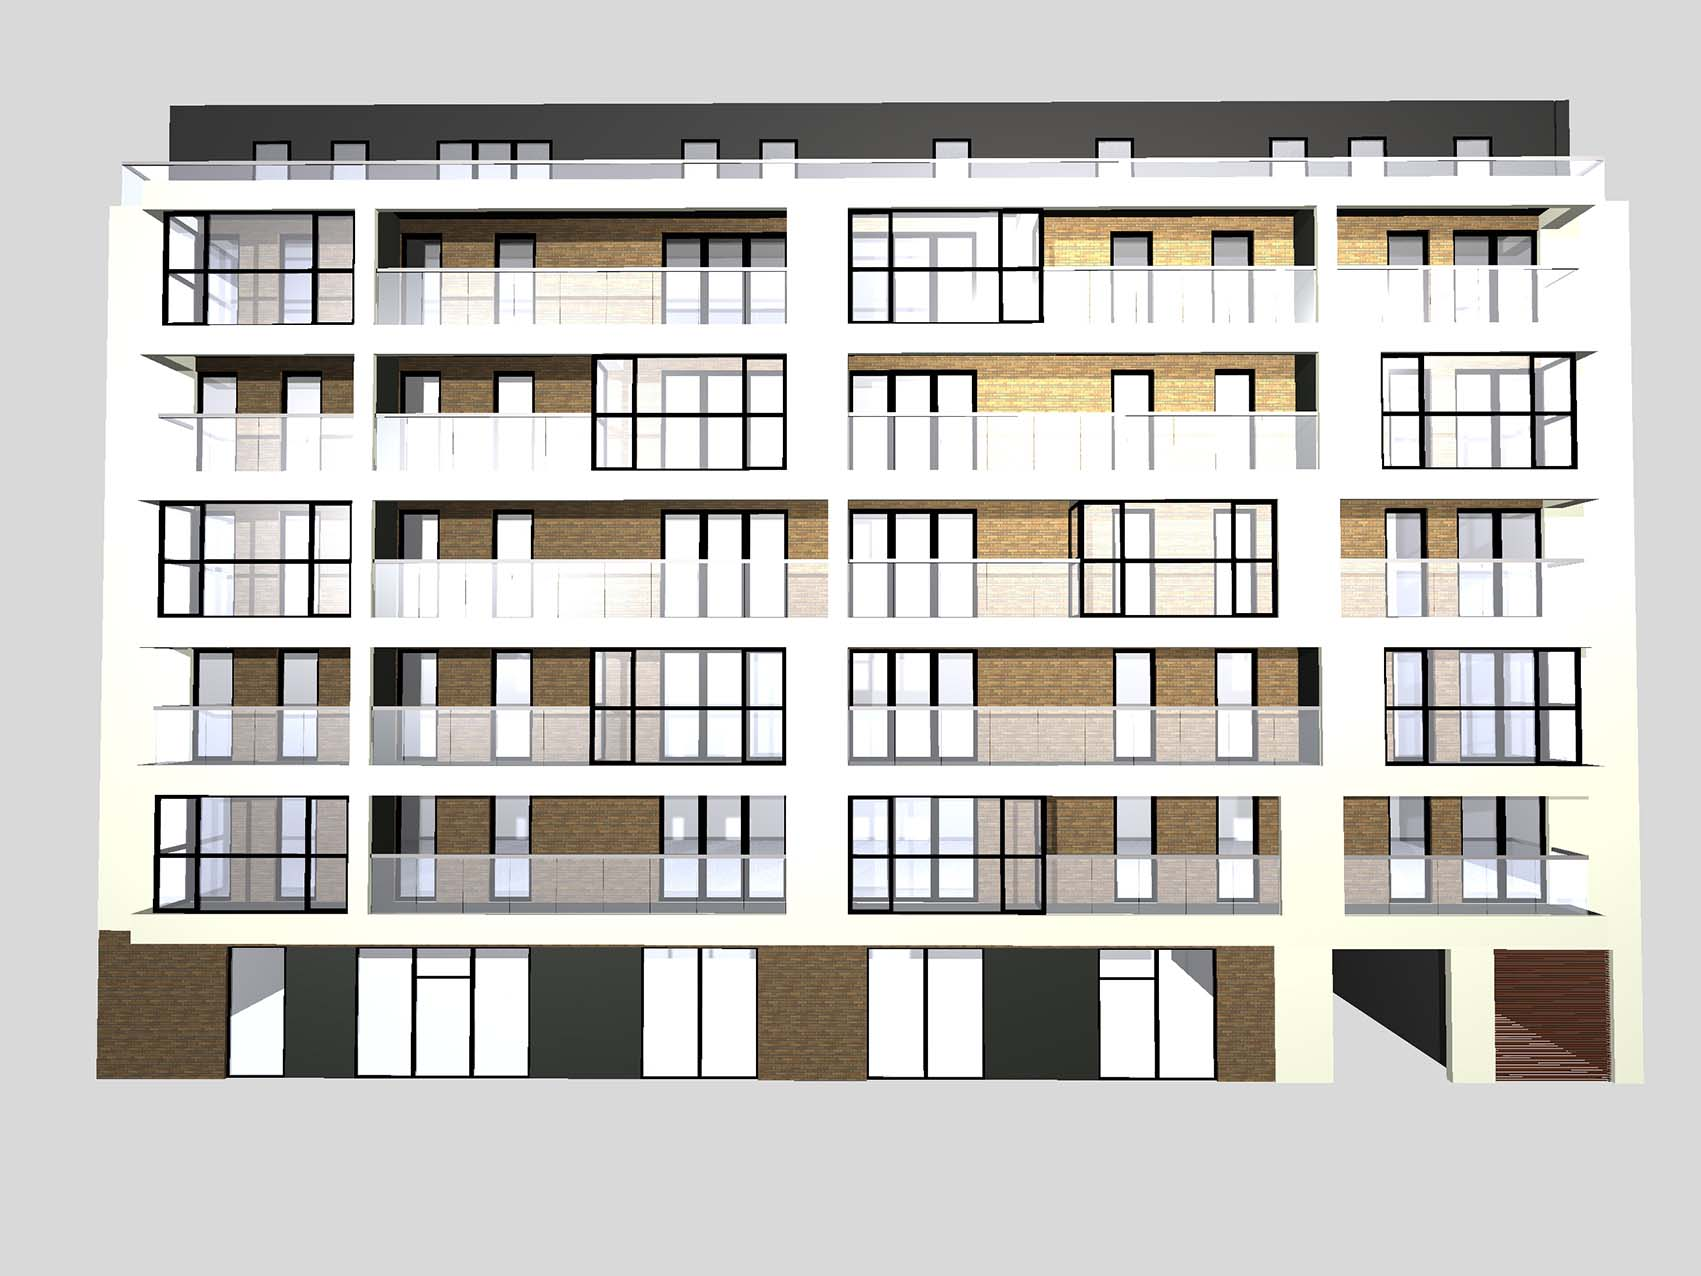 Residential and commercial building Wrocław, Żeromskiego St. Investor: Inter System. Surface: 3 526 m2 – AFTER RENOVATION